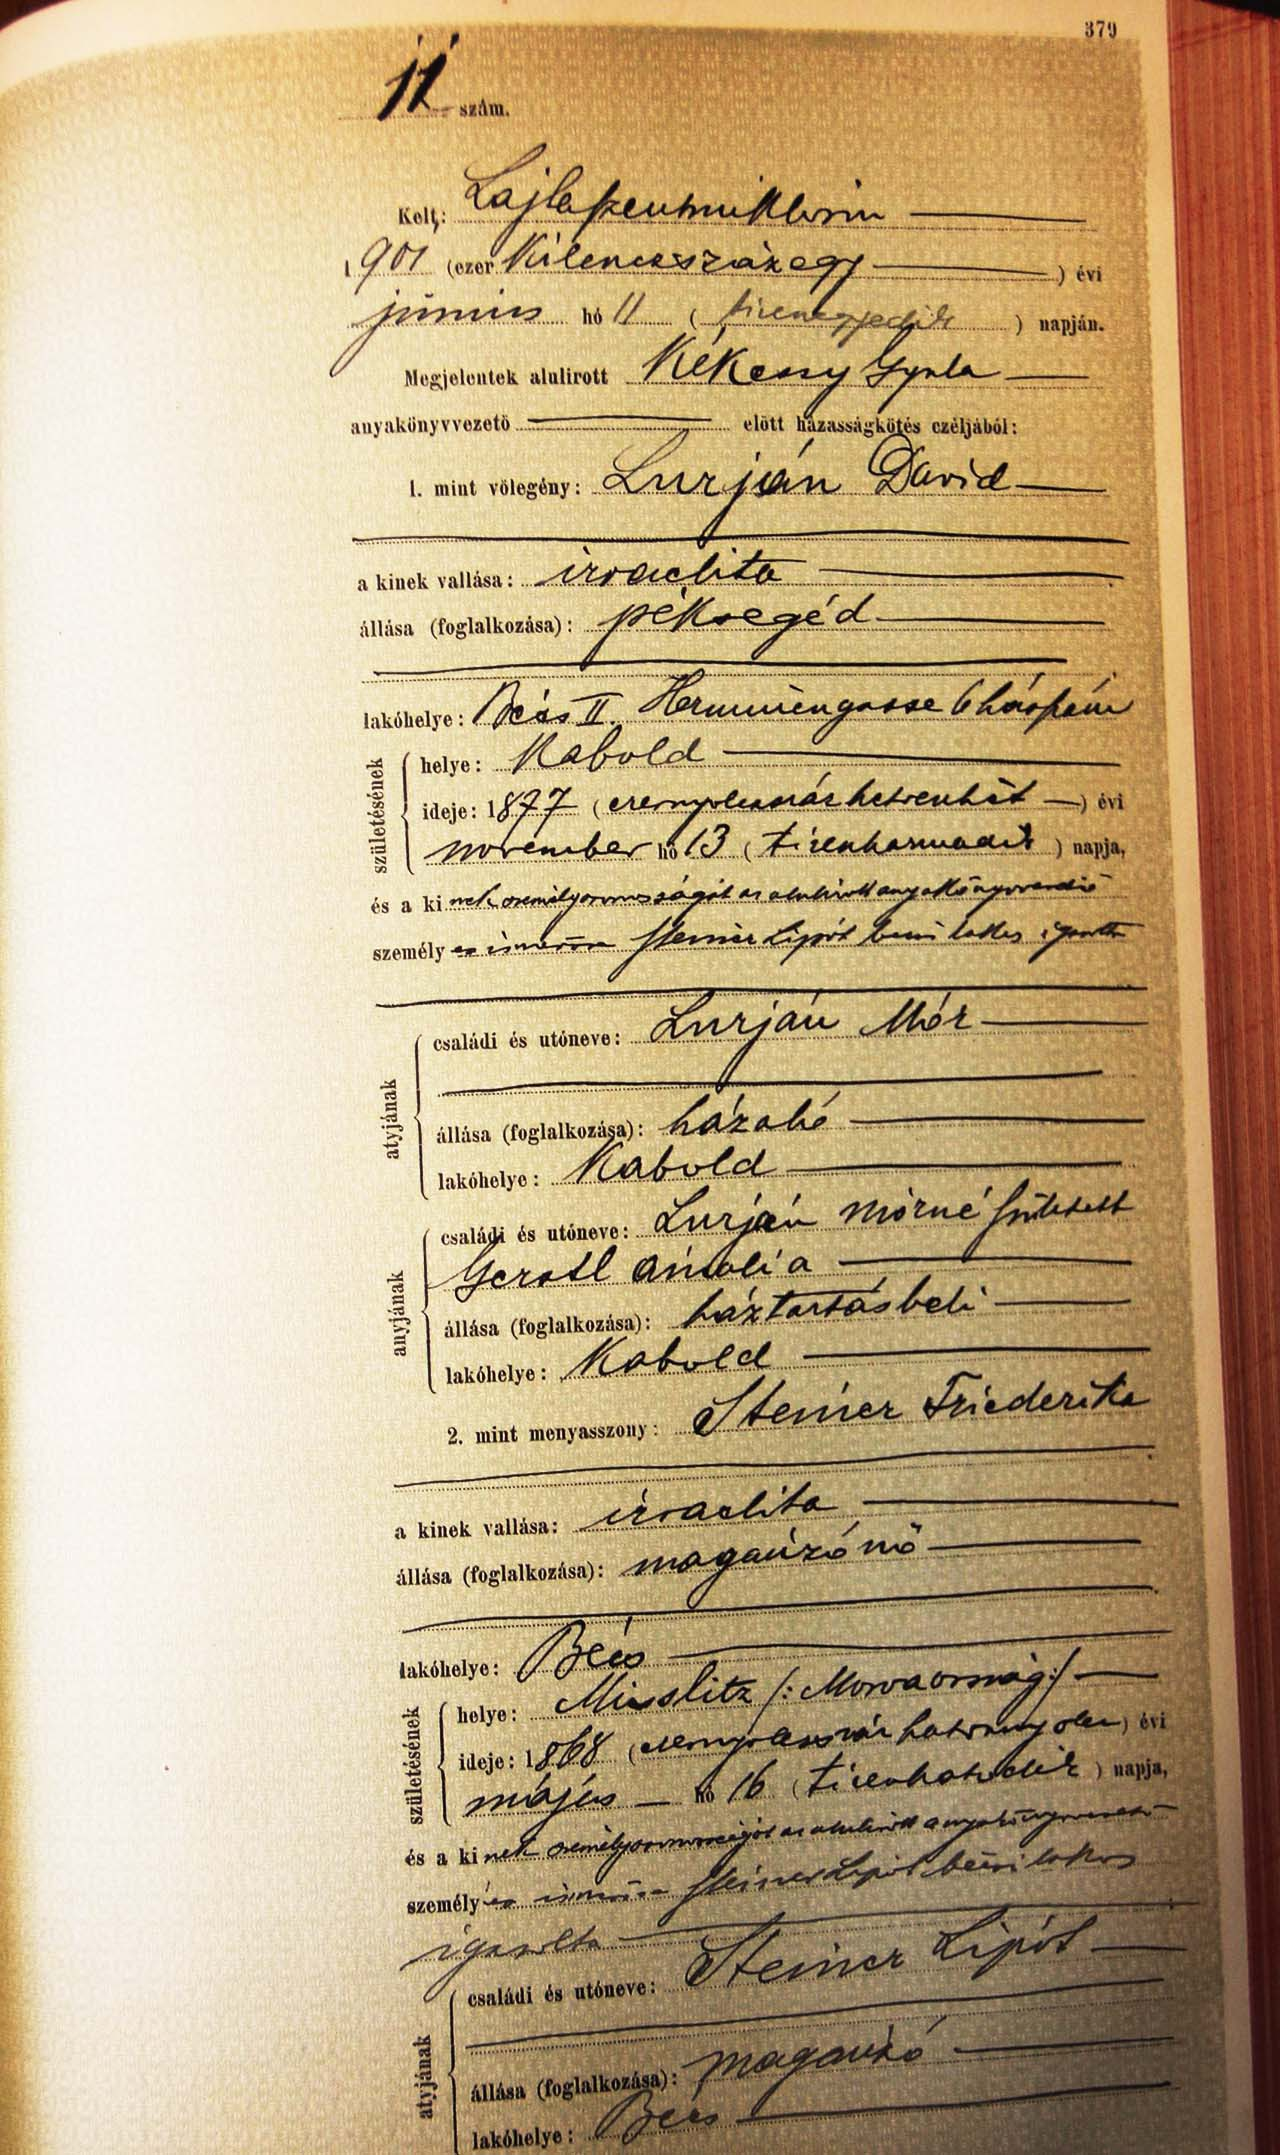 Marriage entry David Lurian and Friederike Steiner, 11 June 1901, Neudörfl